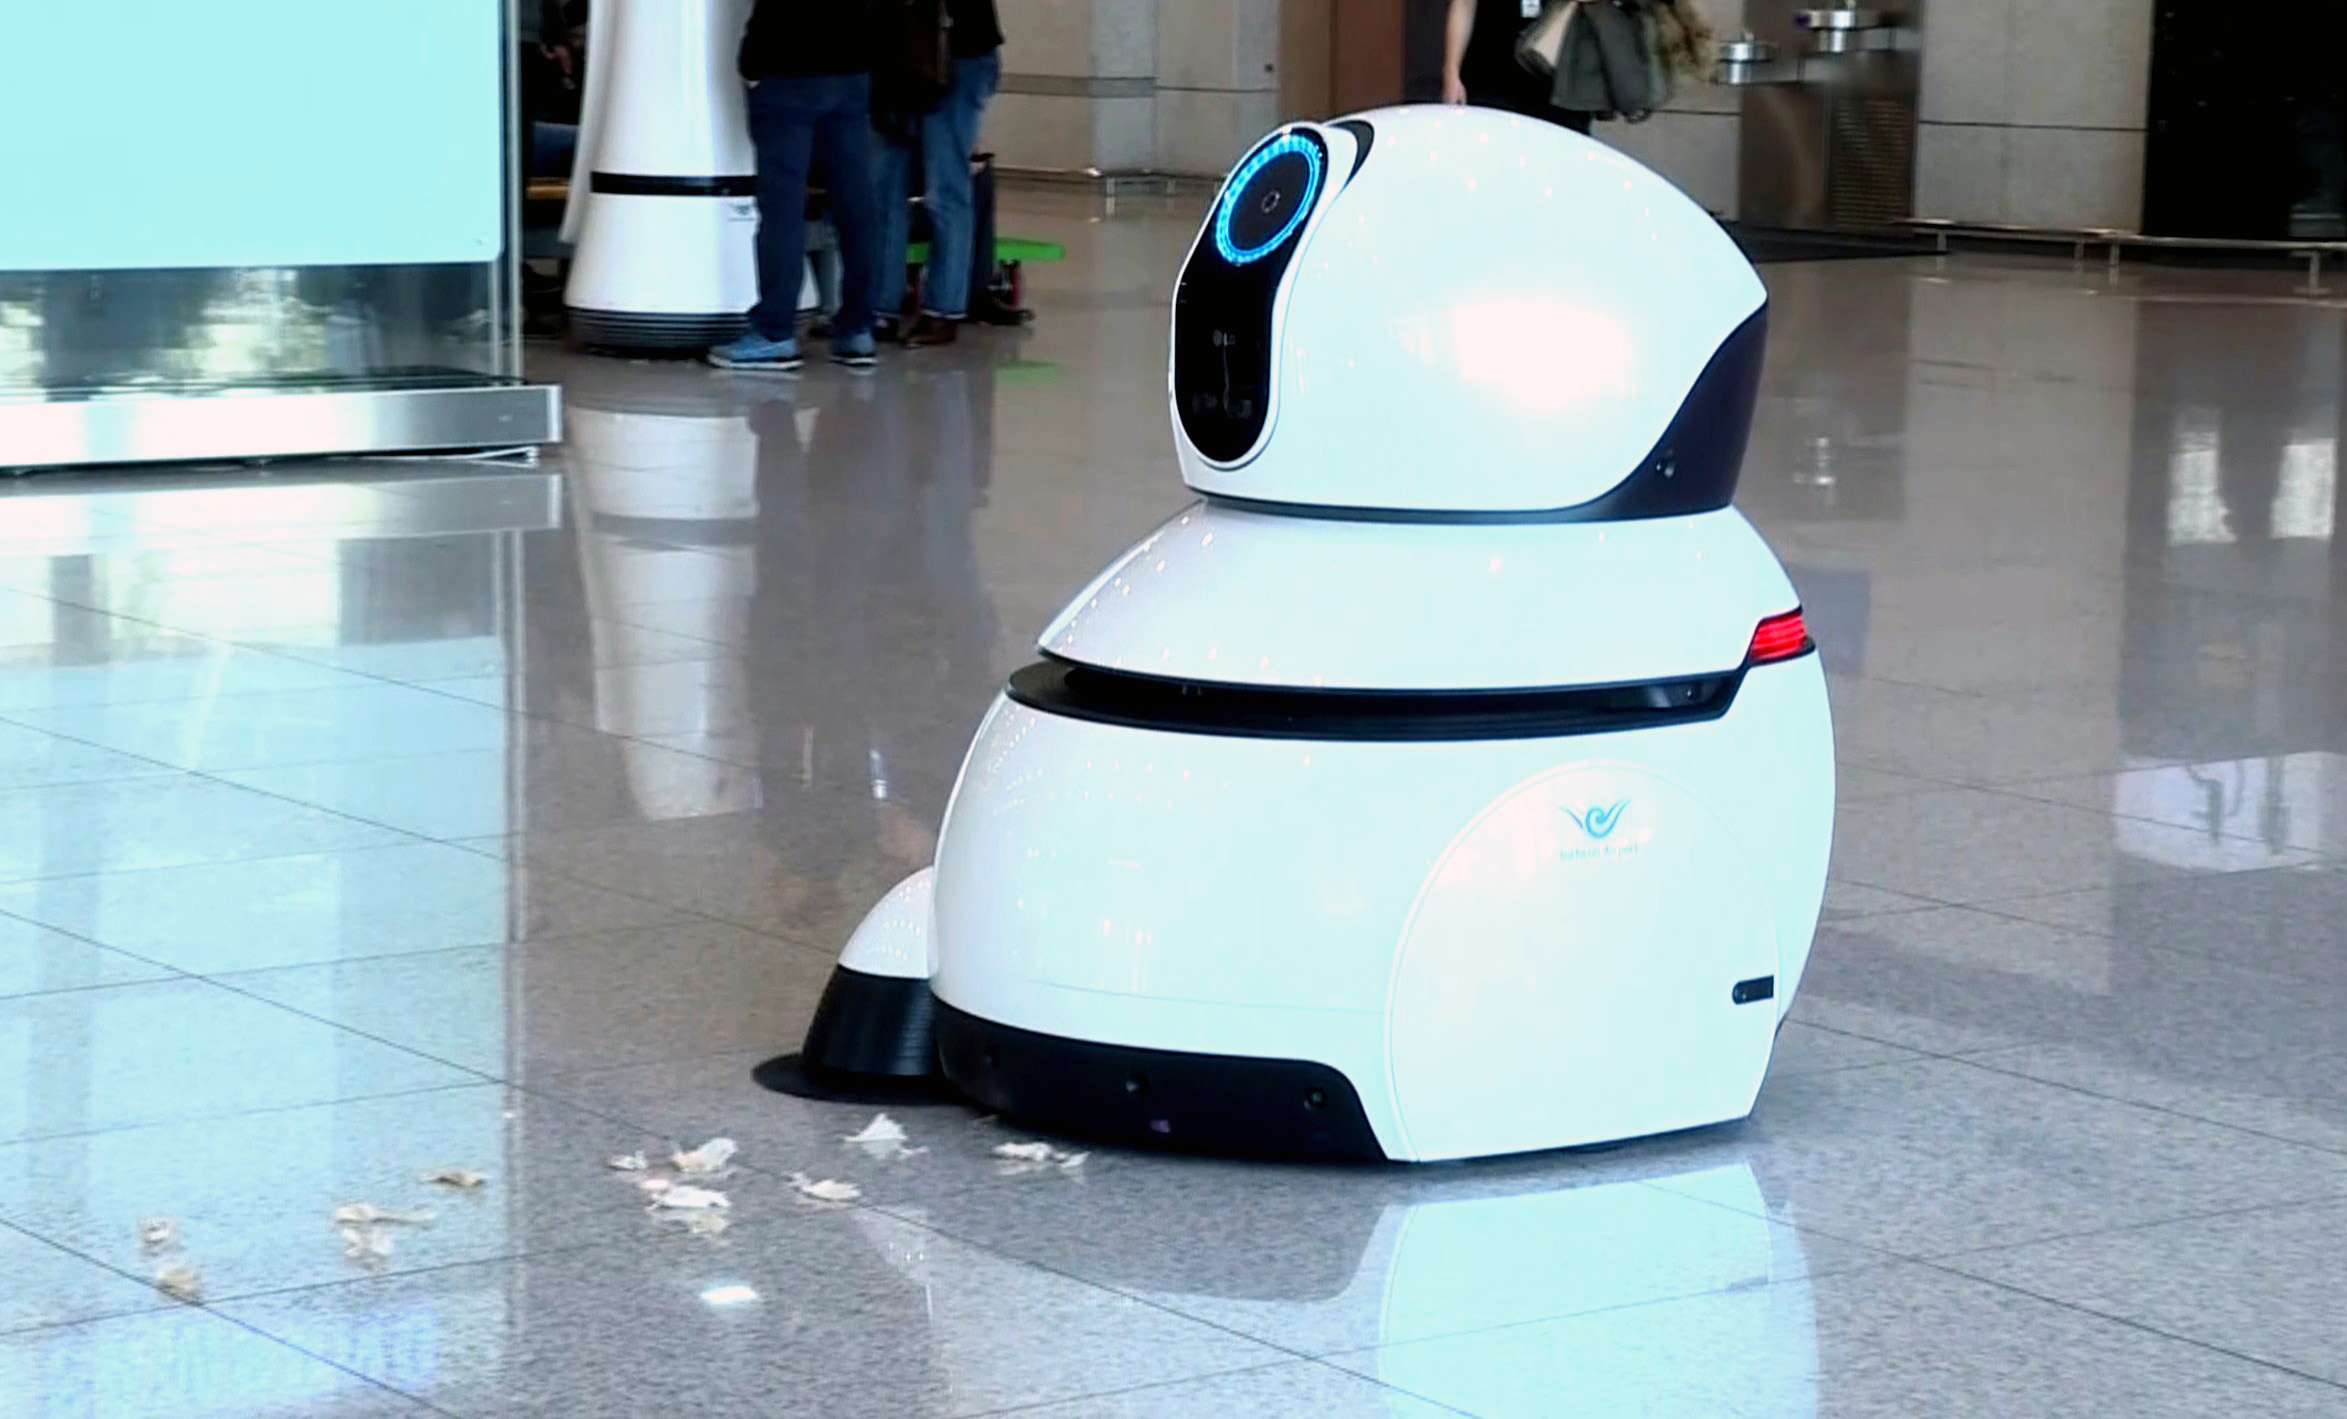 LG Cleaning Robot